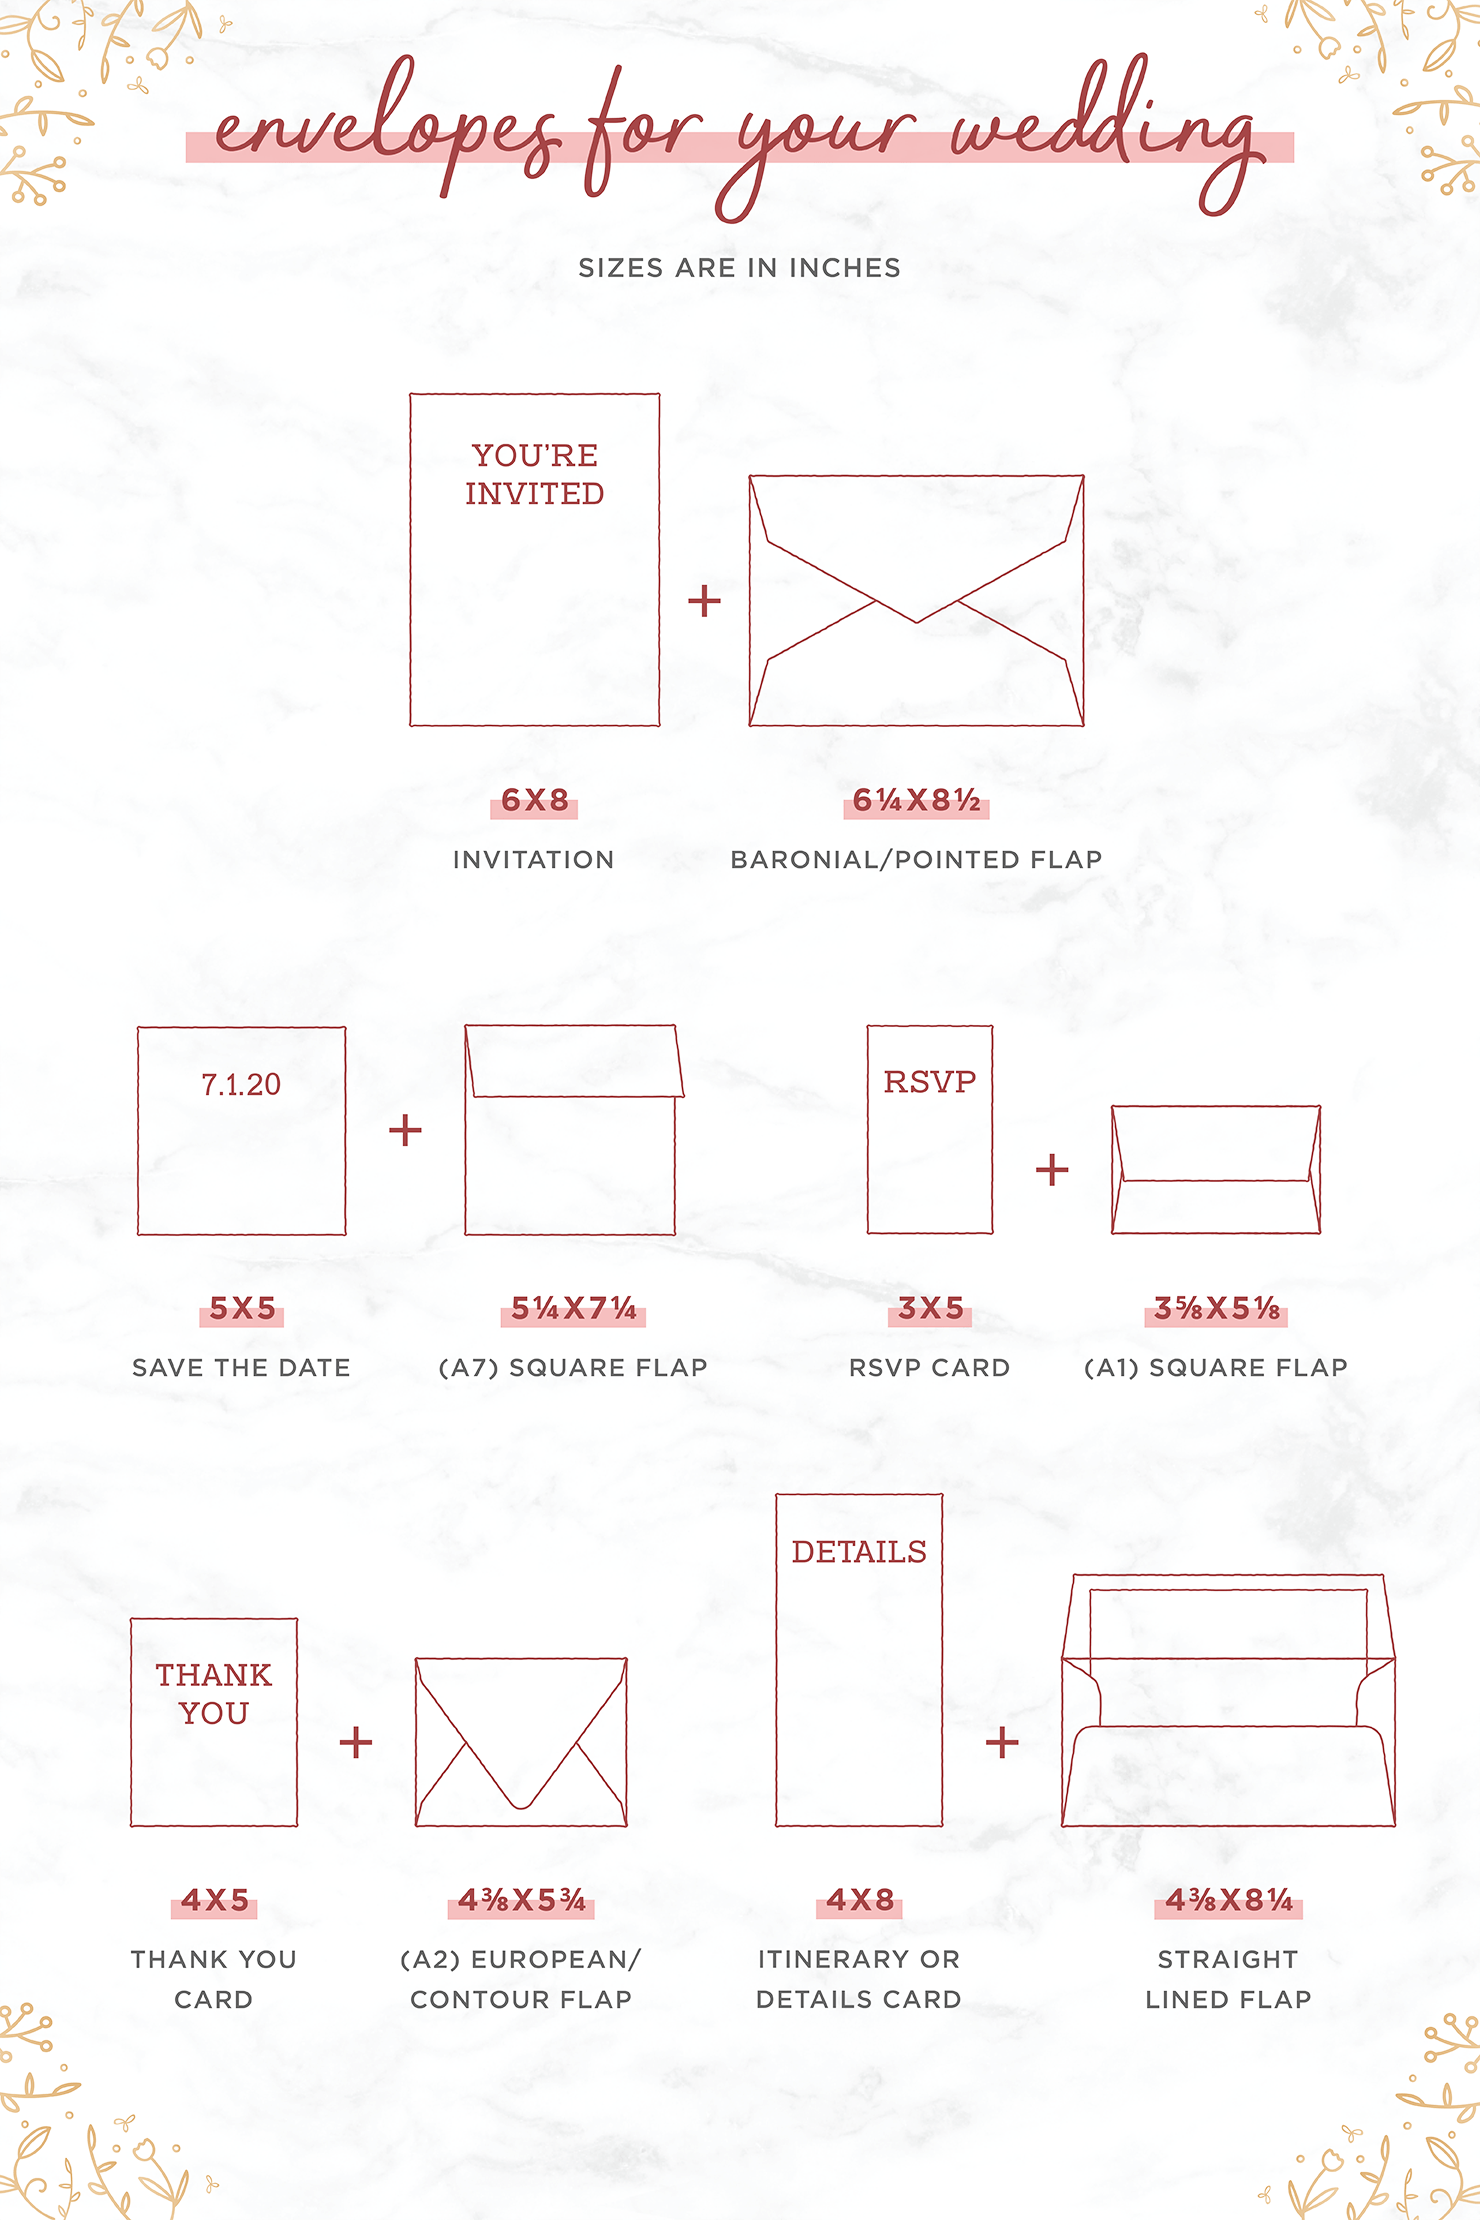 Common Envelope Sizes For Your Wedding Stationery Suite Shutterfly Wedding Stationery Wedding Stationery Suite Wedding Cards